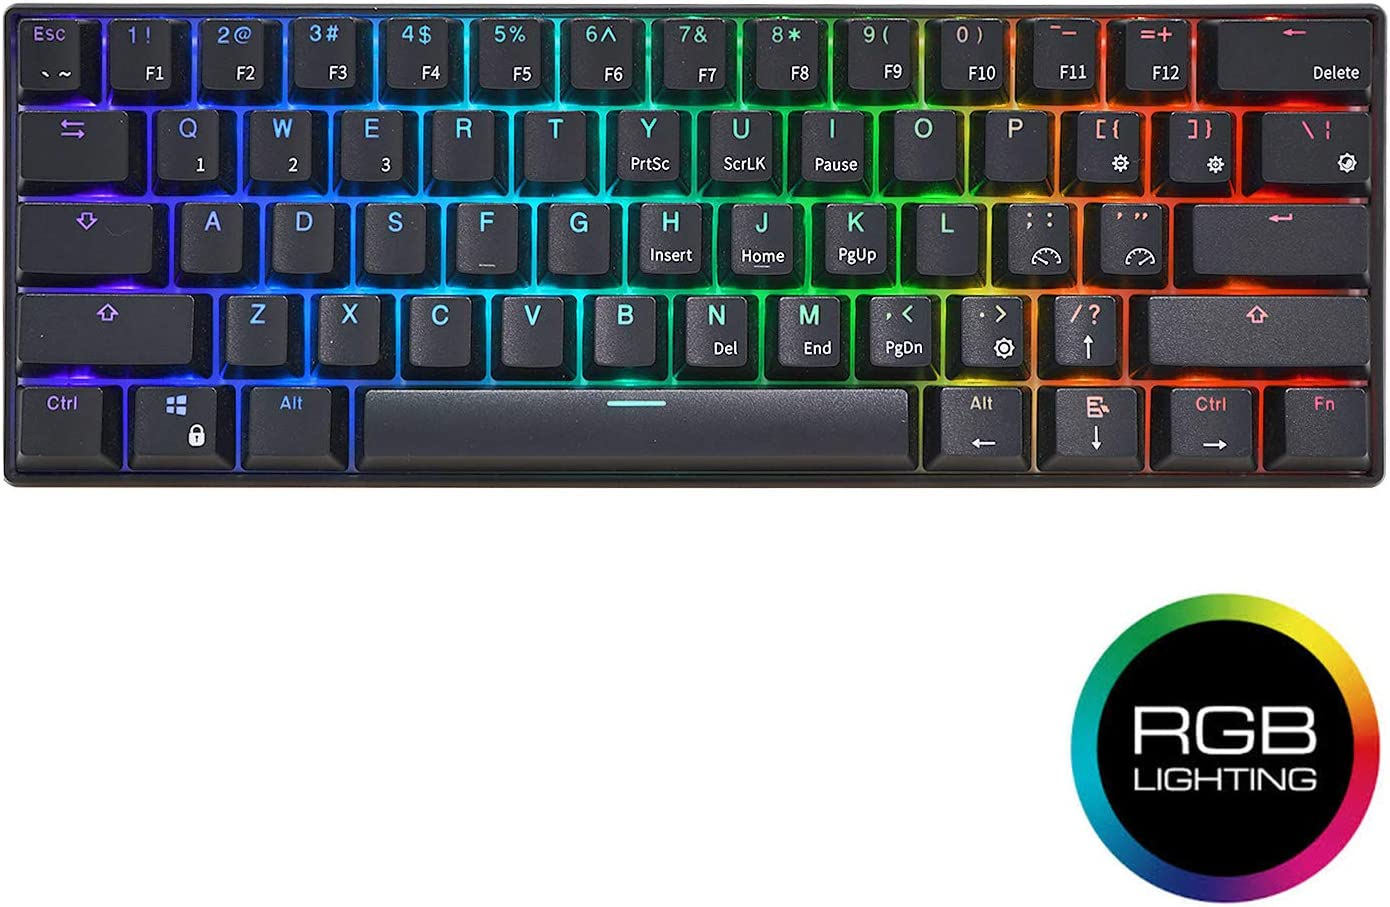 RK ROYAL KLUDGE RK61 Wired 60% Mechanical Gaming Keyboard RGB Backlit Ultra-Compact Red Switch Black